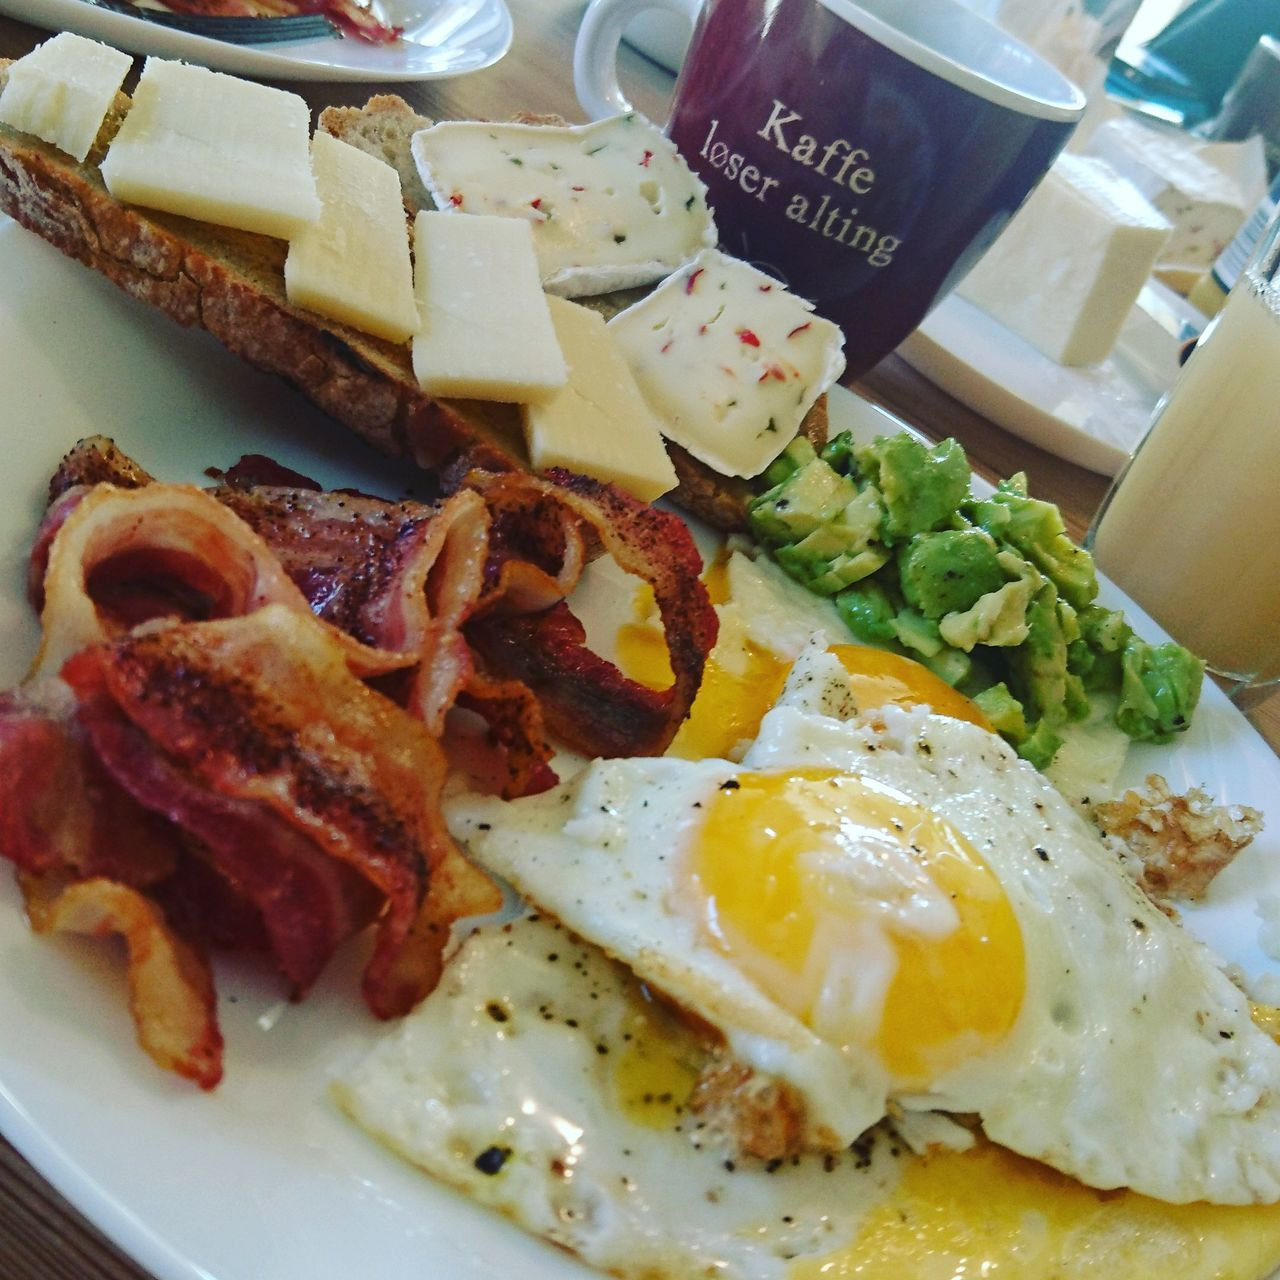 Brunch can take many forms ... Breakfast Food And Drink Fried Egg Food Meal Plate Smoked Bacon Cheese Brunch